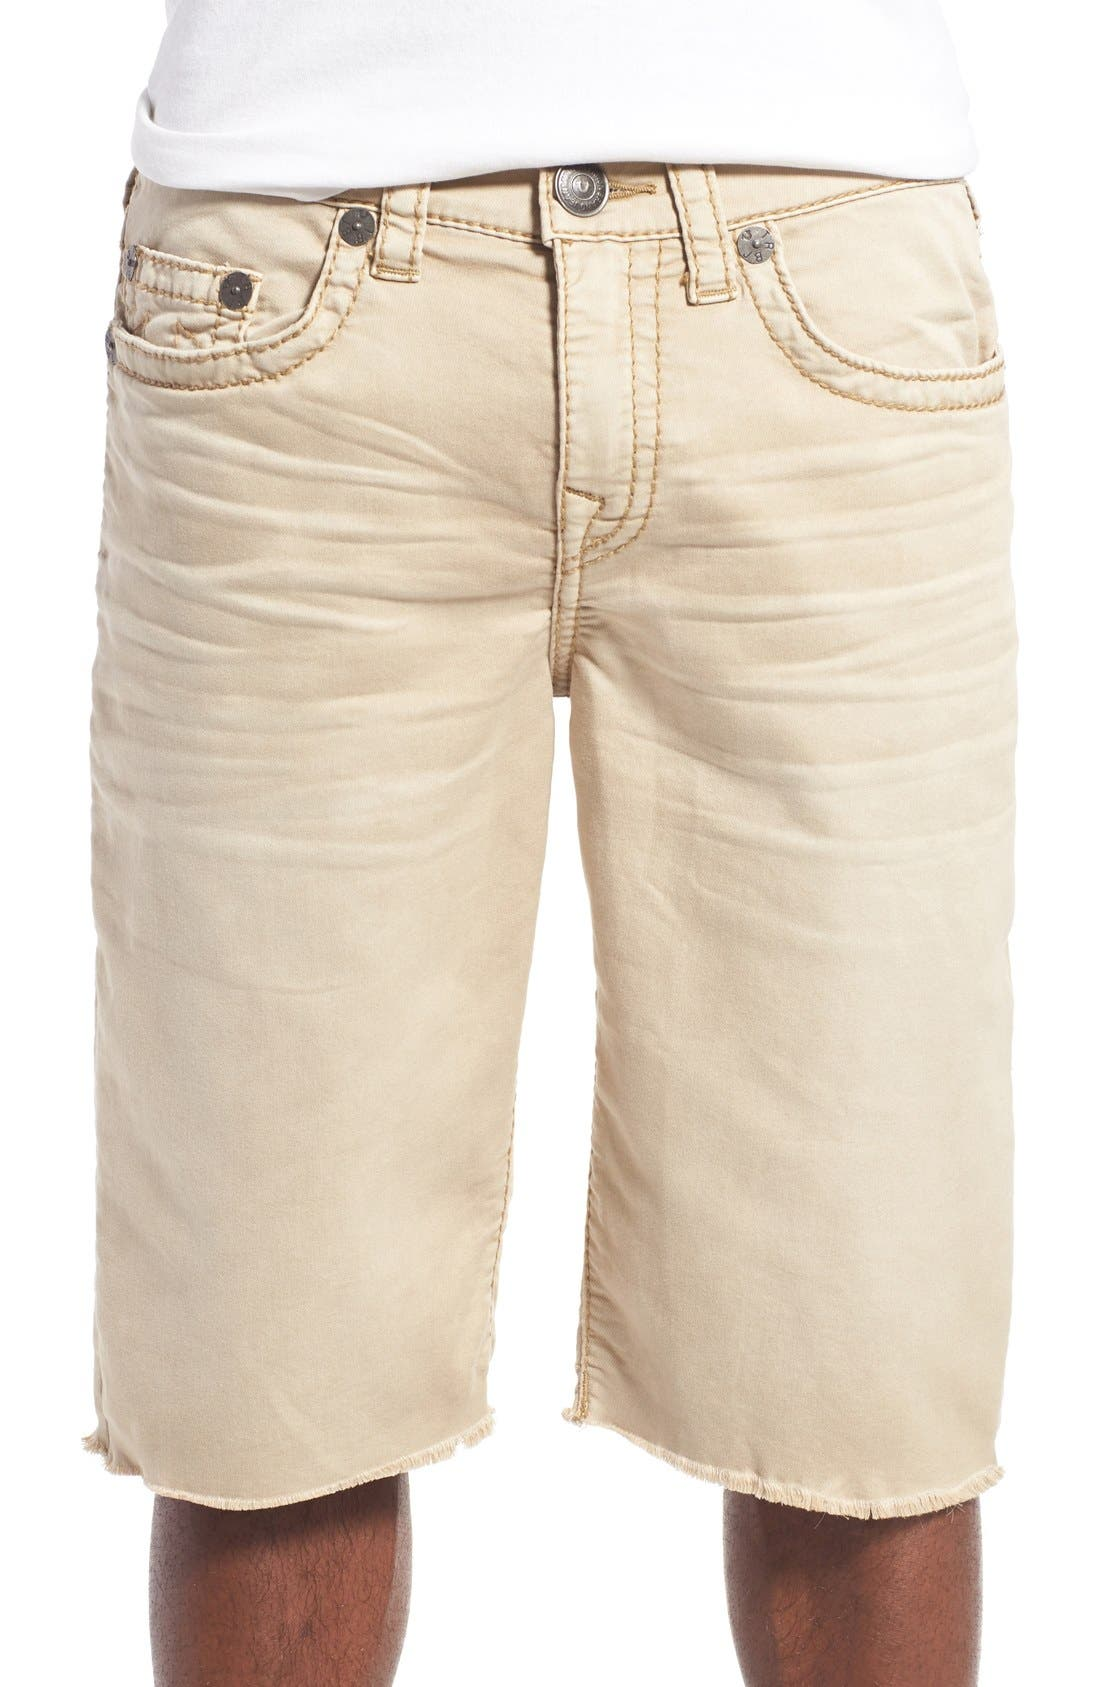 True Religion Brand Jeans 'Geno' Cutoff Denim Shorts